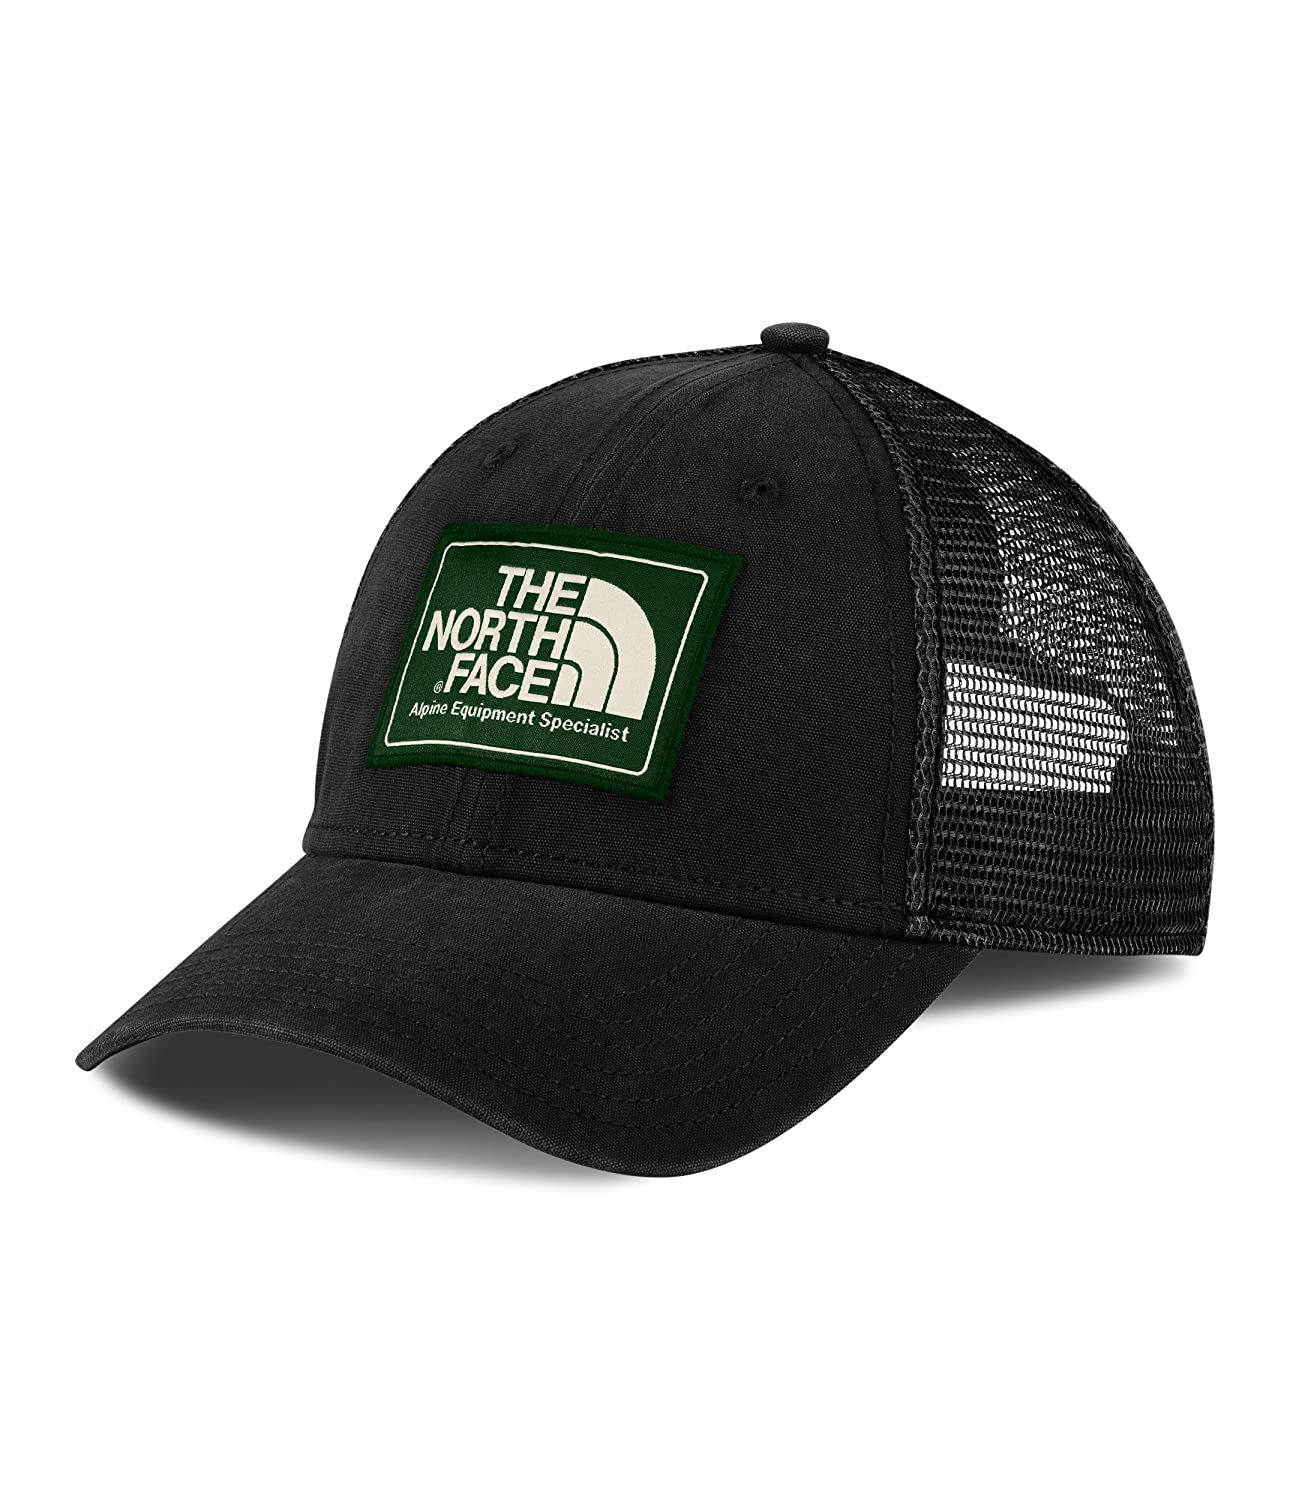 The North Face Mudder Trucker Gorra de béisbol, Hombre, Negro (Black), One Size (Tamaño del Fabricante:OS): Amazon.es: Deportes y aire libre